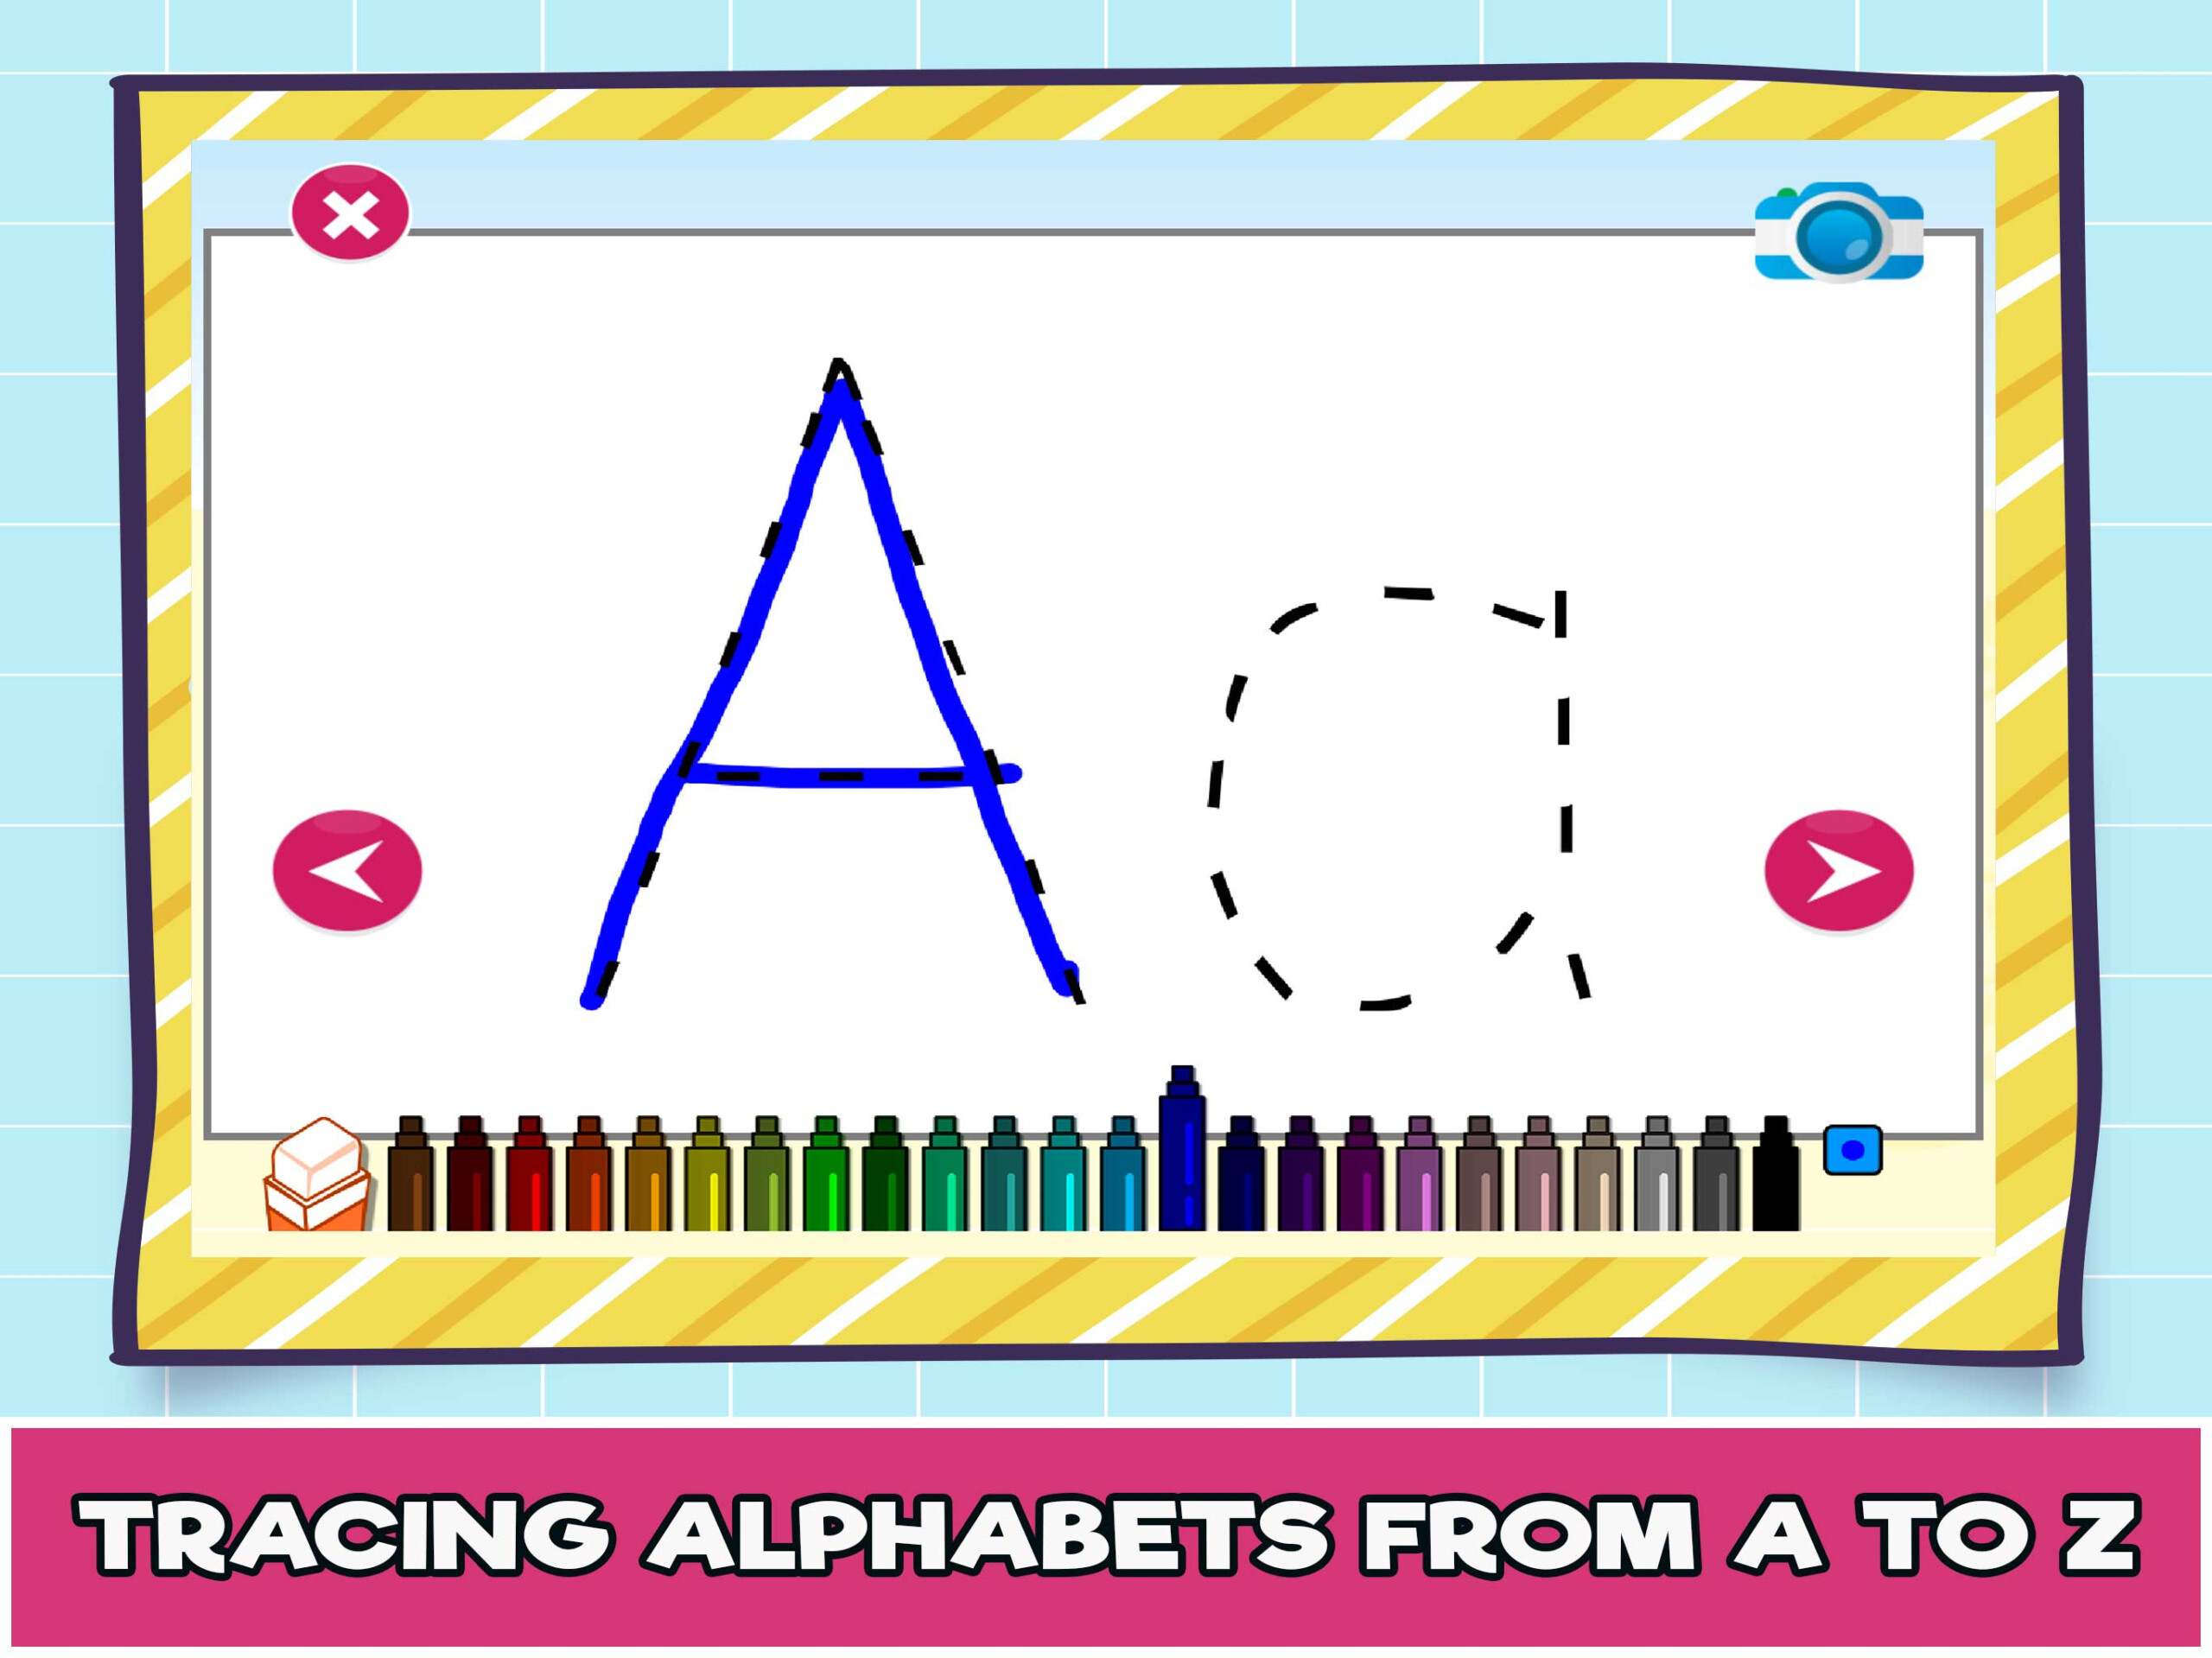 Free Online Alphabet Tracing Game For Kids - The Learning Apps within Interactive Tracing Letters Online